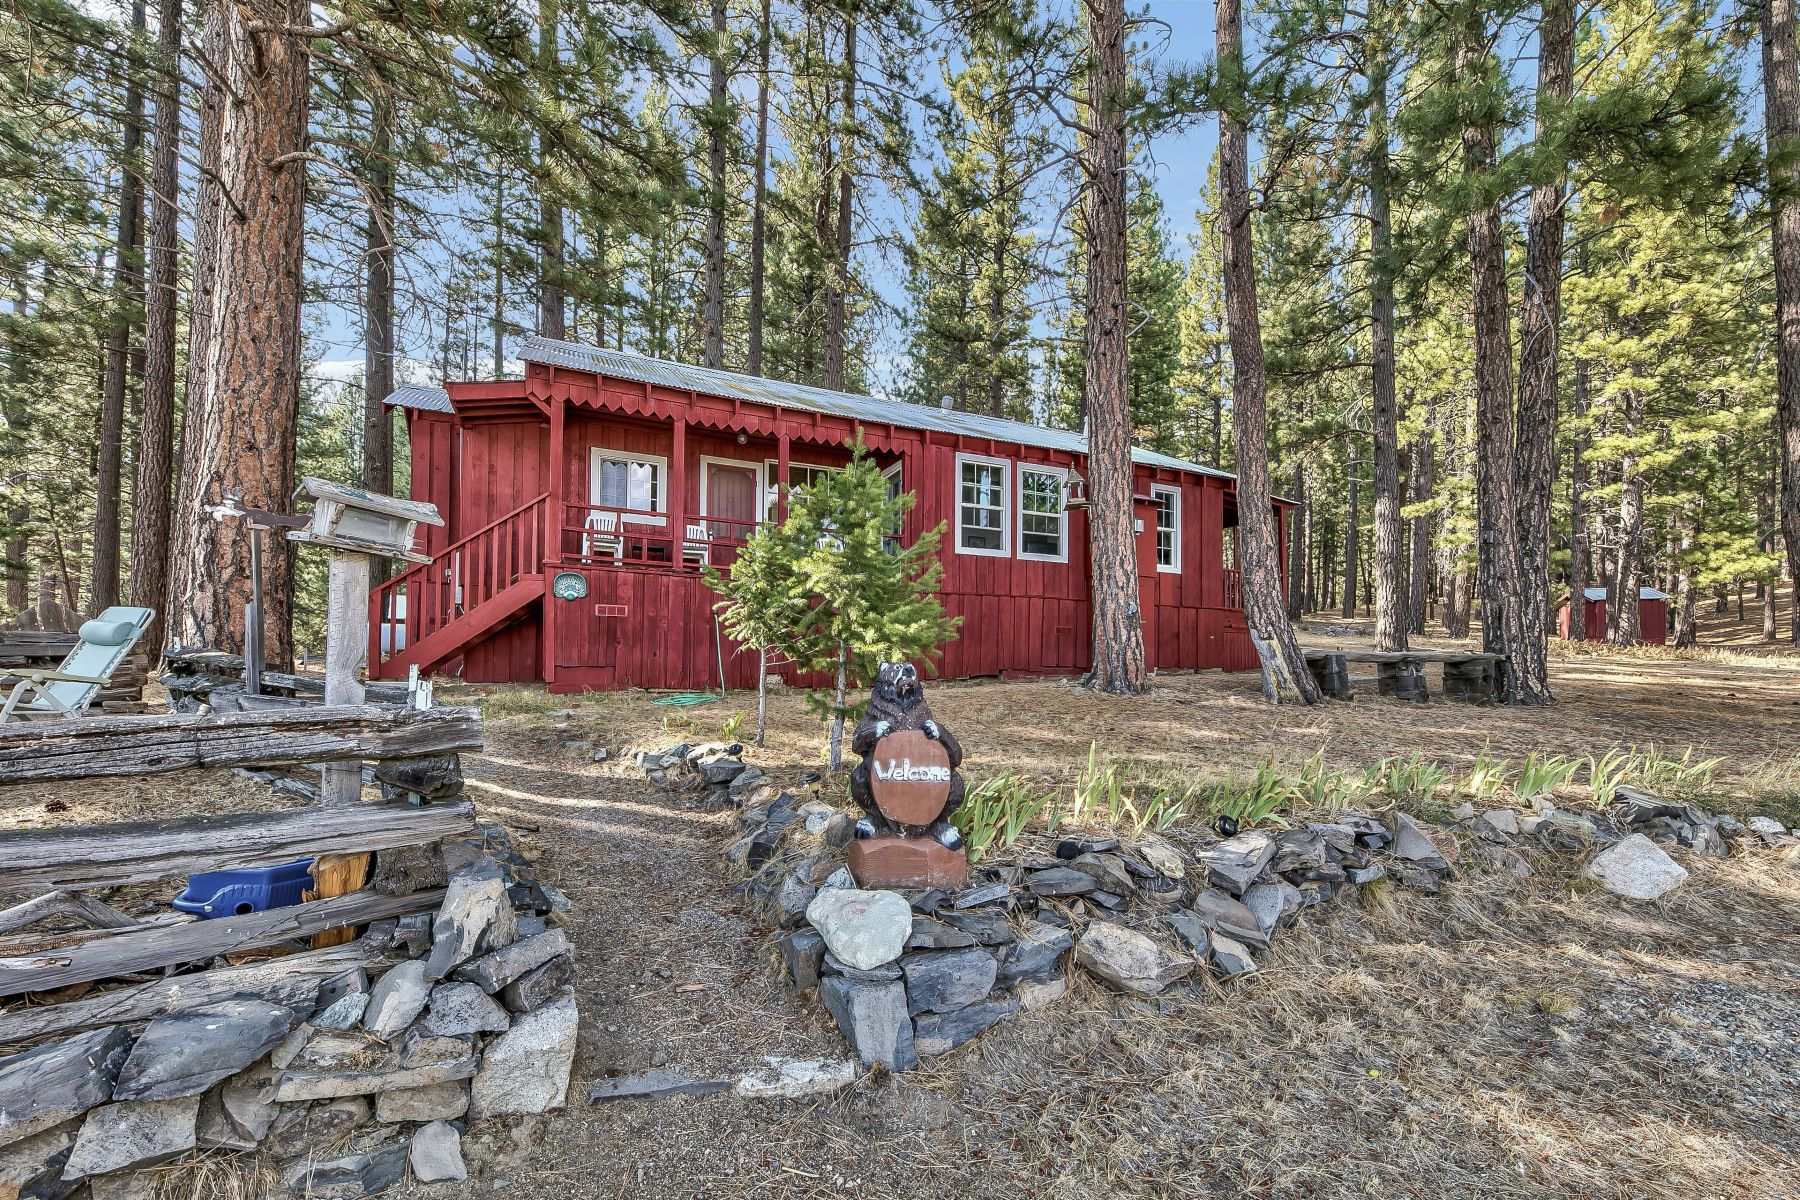 Single Family Homes for Active at Cute Red Cabin 10 Egbert Lane Sattley, California 96124 United States